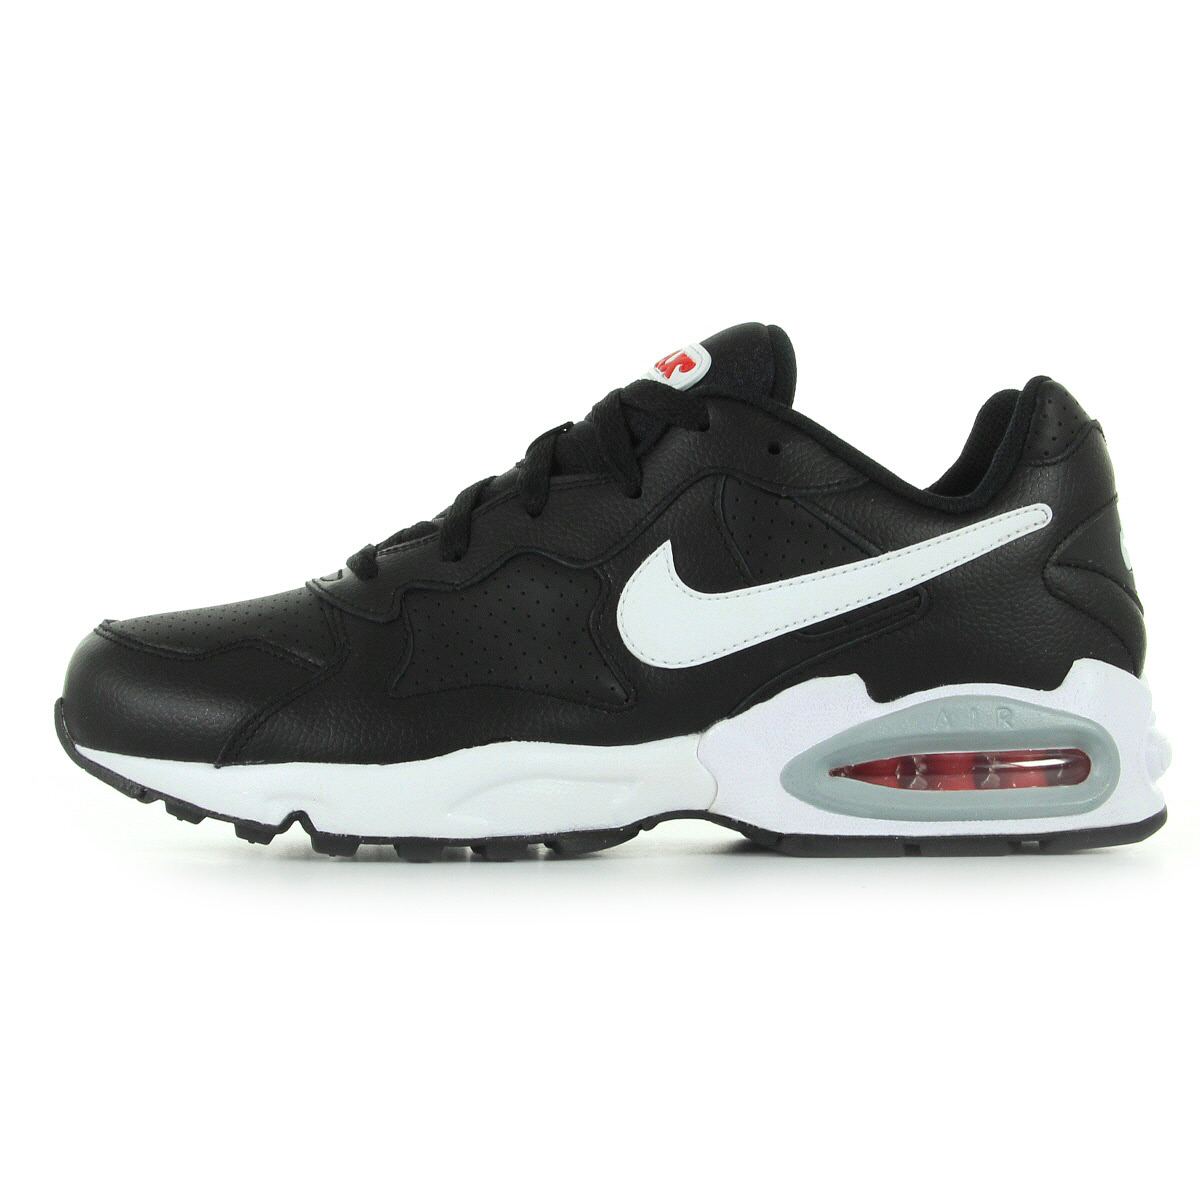 new product c1059 2cc81 Nike Air Zoom Structure 19 W Chaussures running femme, nike usa inc